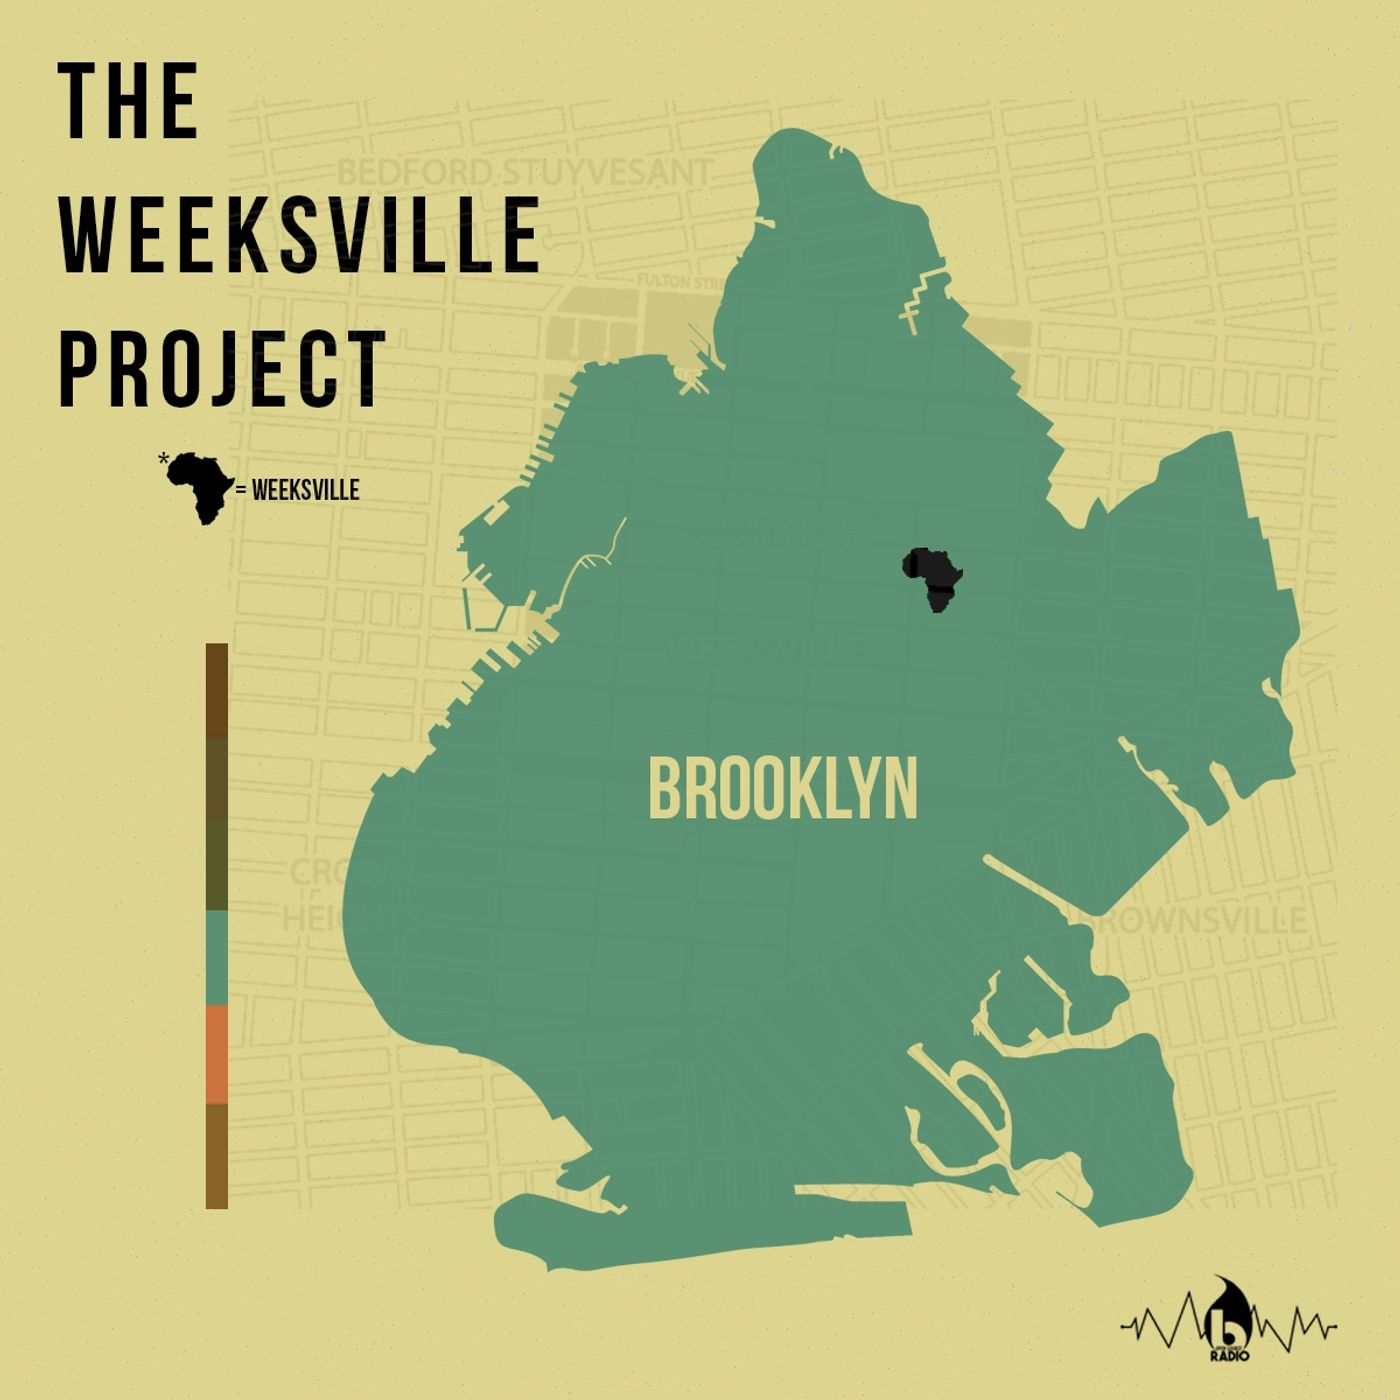 Episode 547 - The Weeksville Project